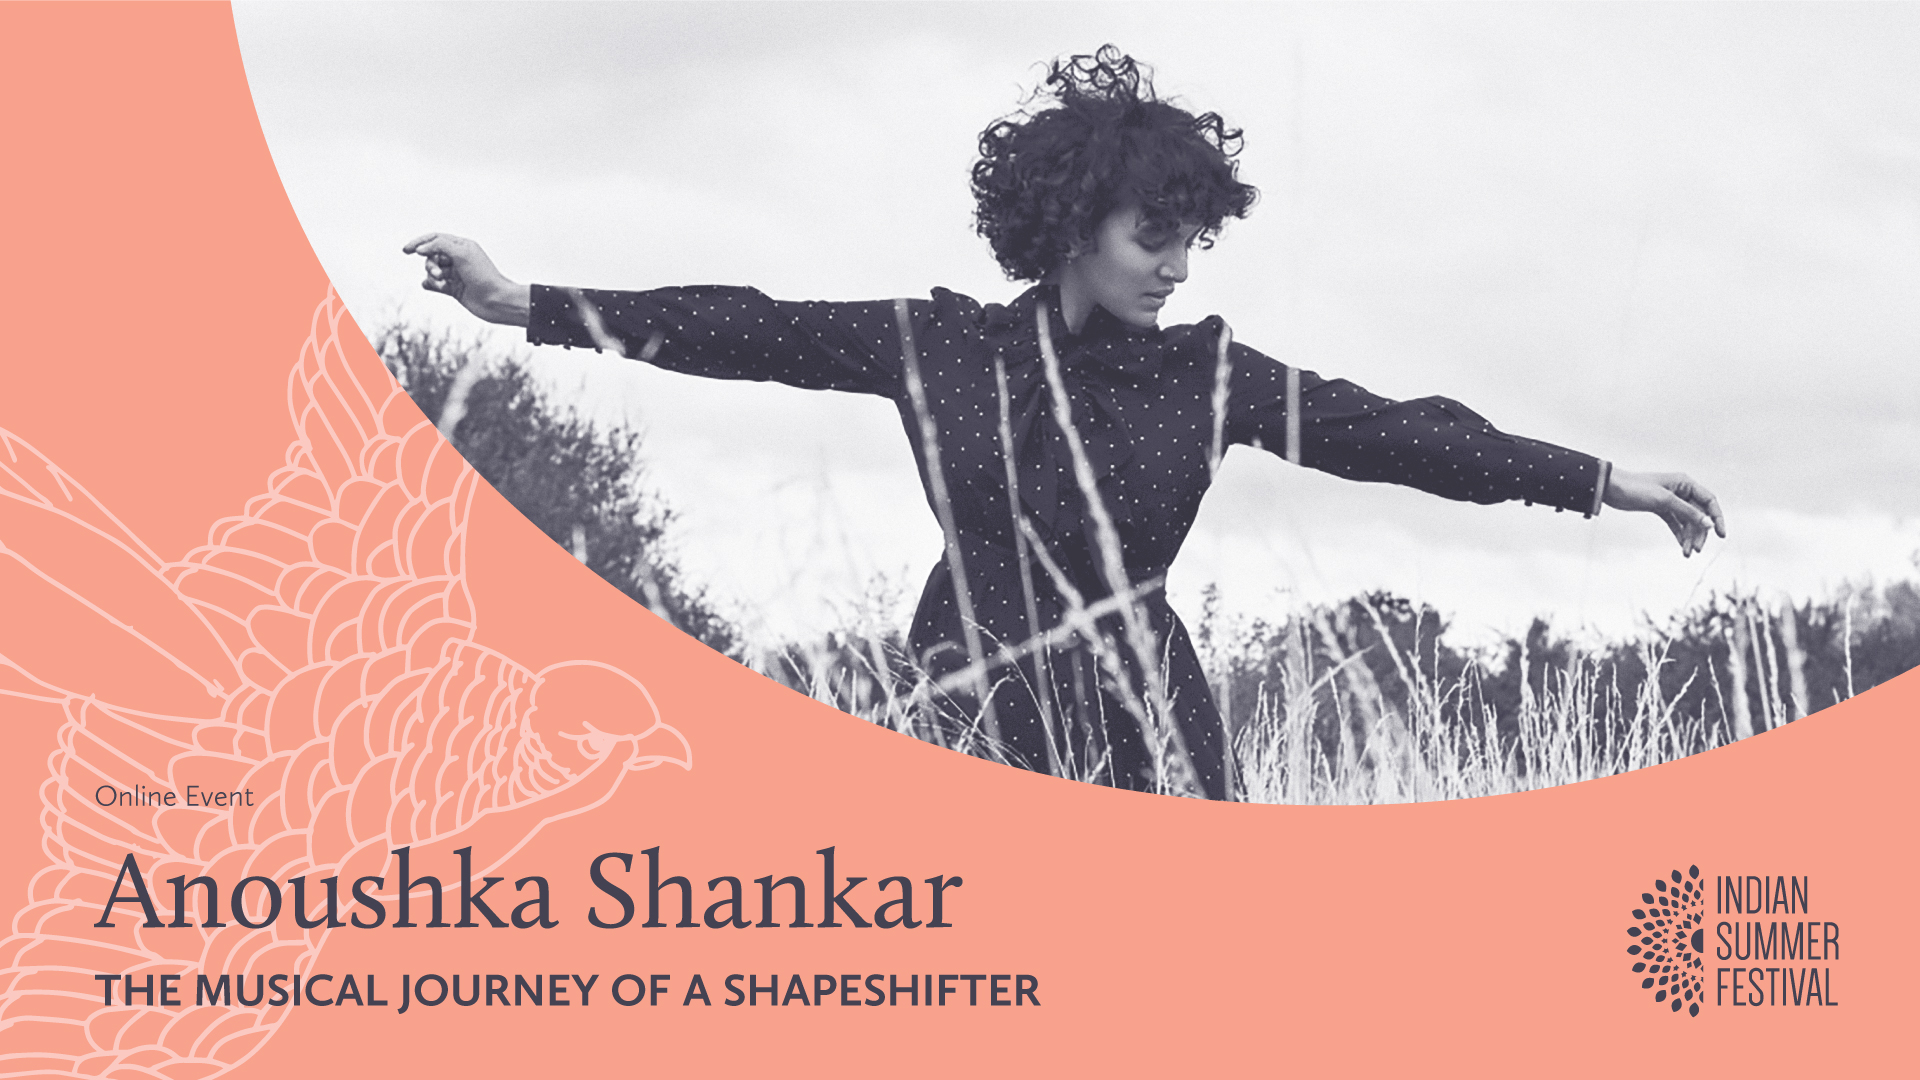 """Online Event banner for Anoushka Shankar's event titled """"The Musical Journey of a Shapeshifter."""" A black and white image shows Anoushka twirling through a field featuring high stalks of grass, arms spread wide."""